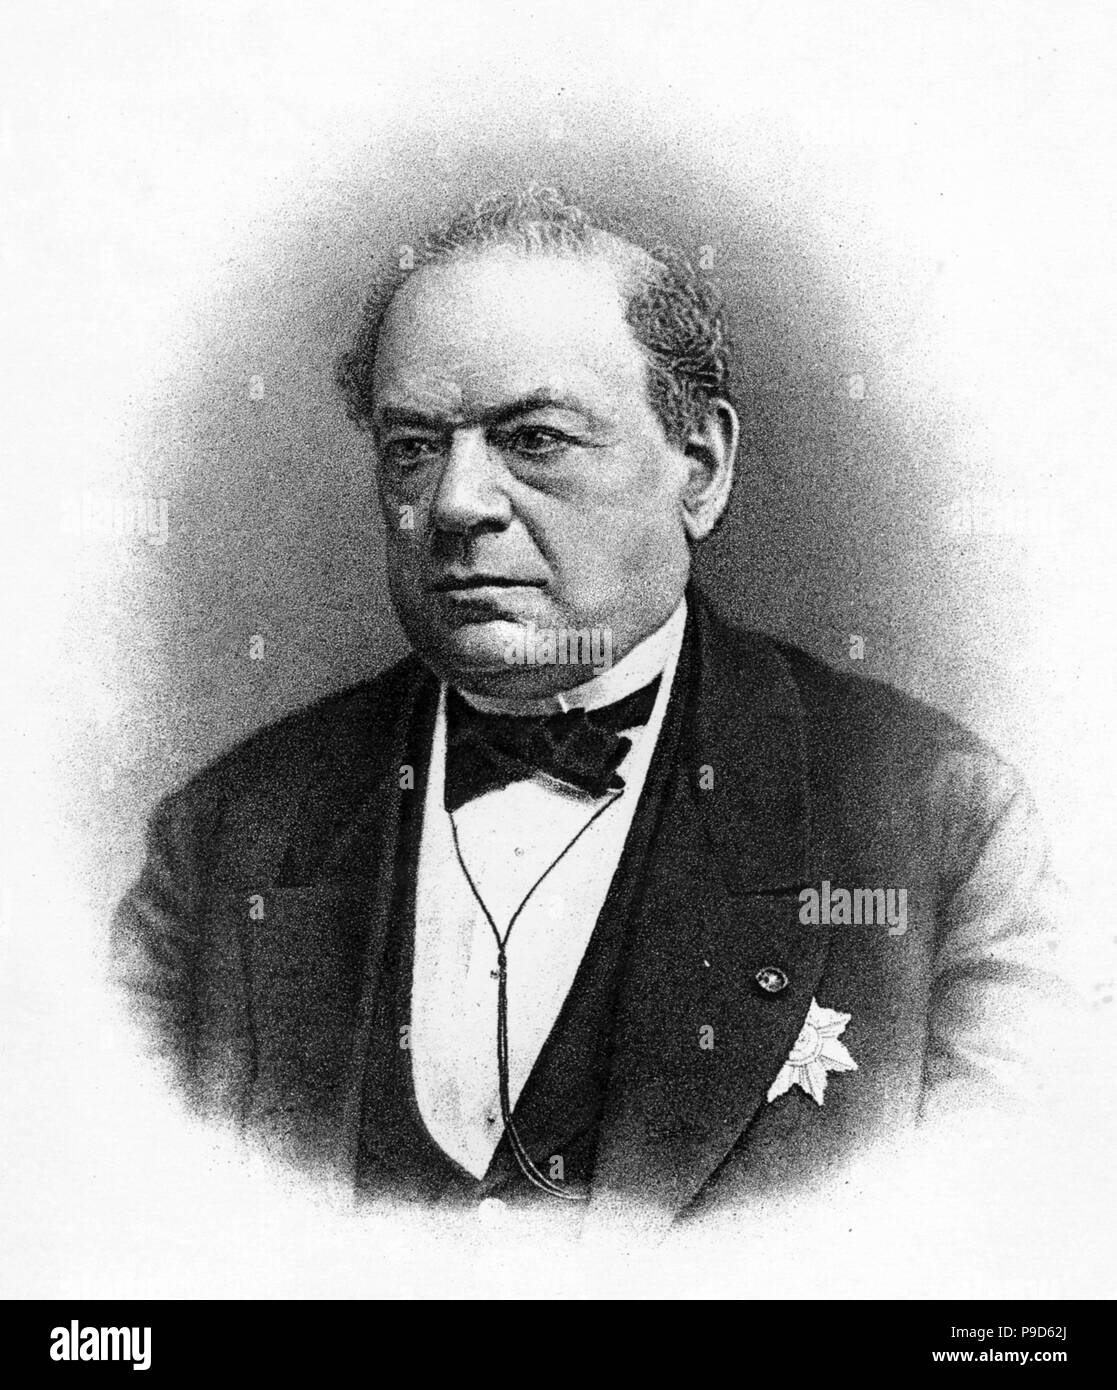 Engineer and physicist Moritz Hermann von Jacobi (1801-1874). Museum: © The Lebedev Physics Institute (FIAN), Moscow. - Stock Image